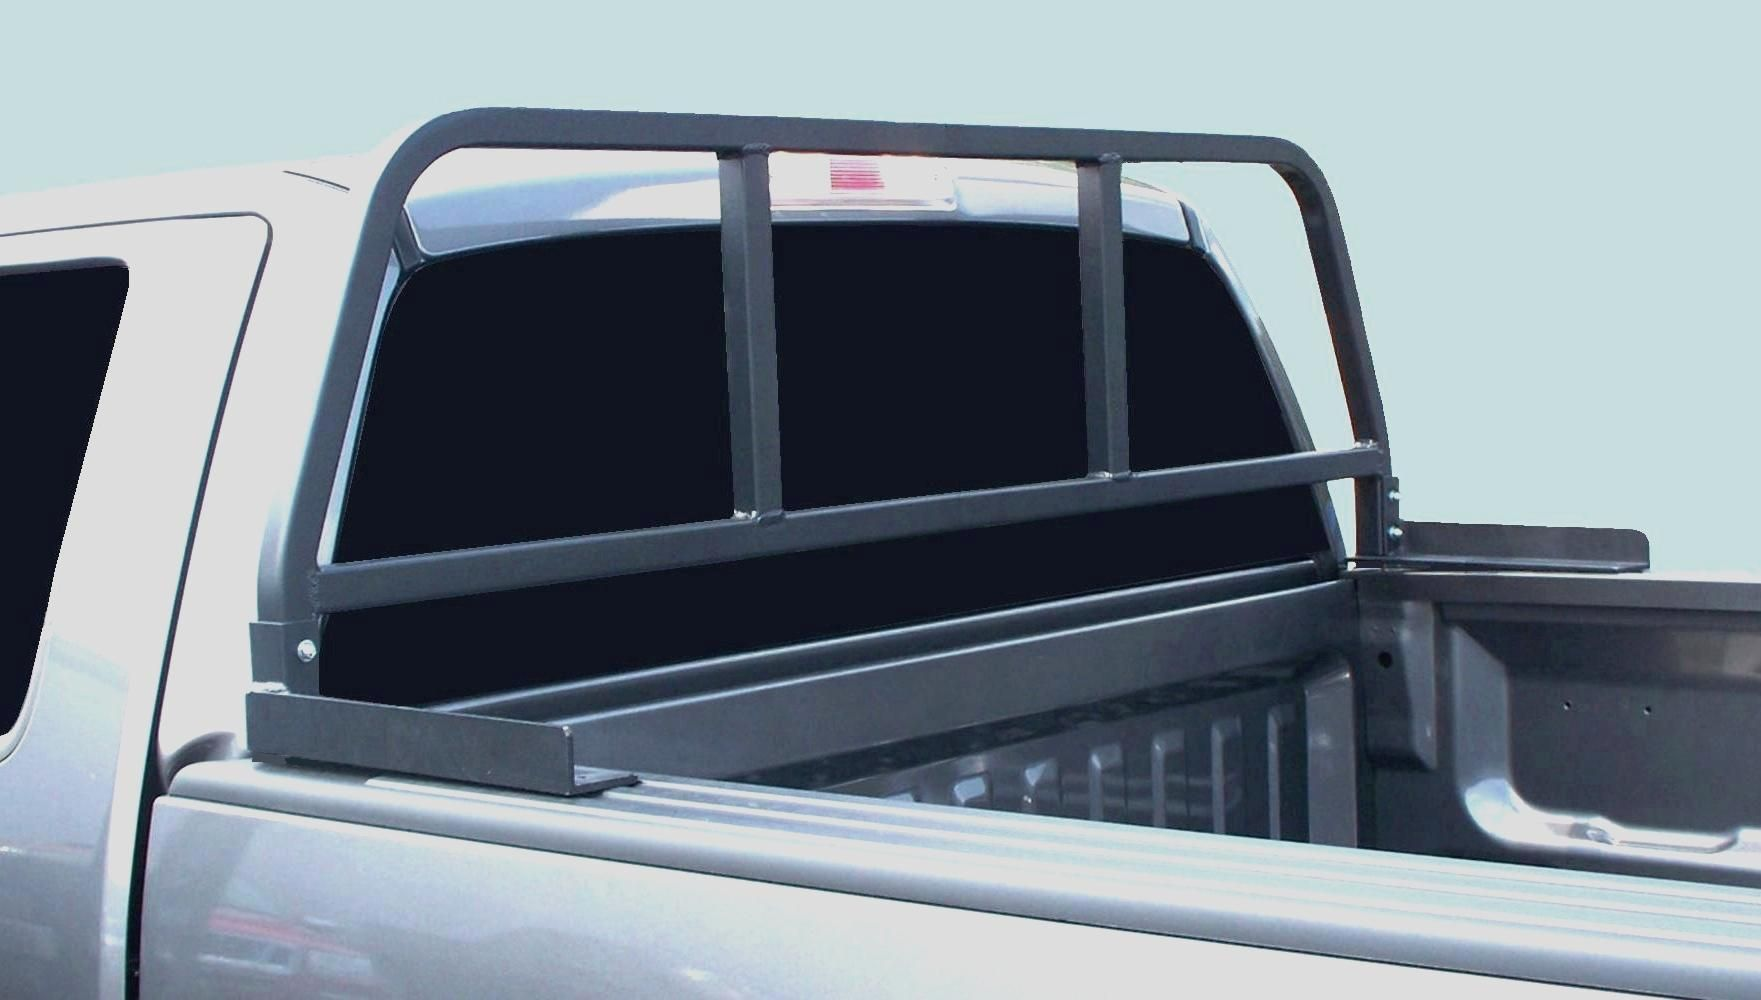 Easy to do and custom rack for your truck. simple easy